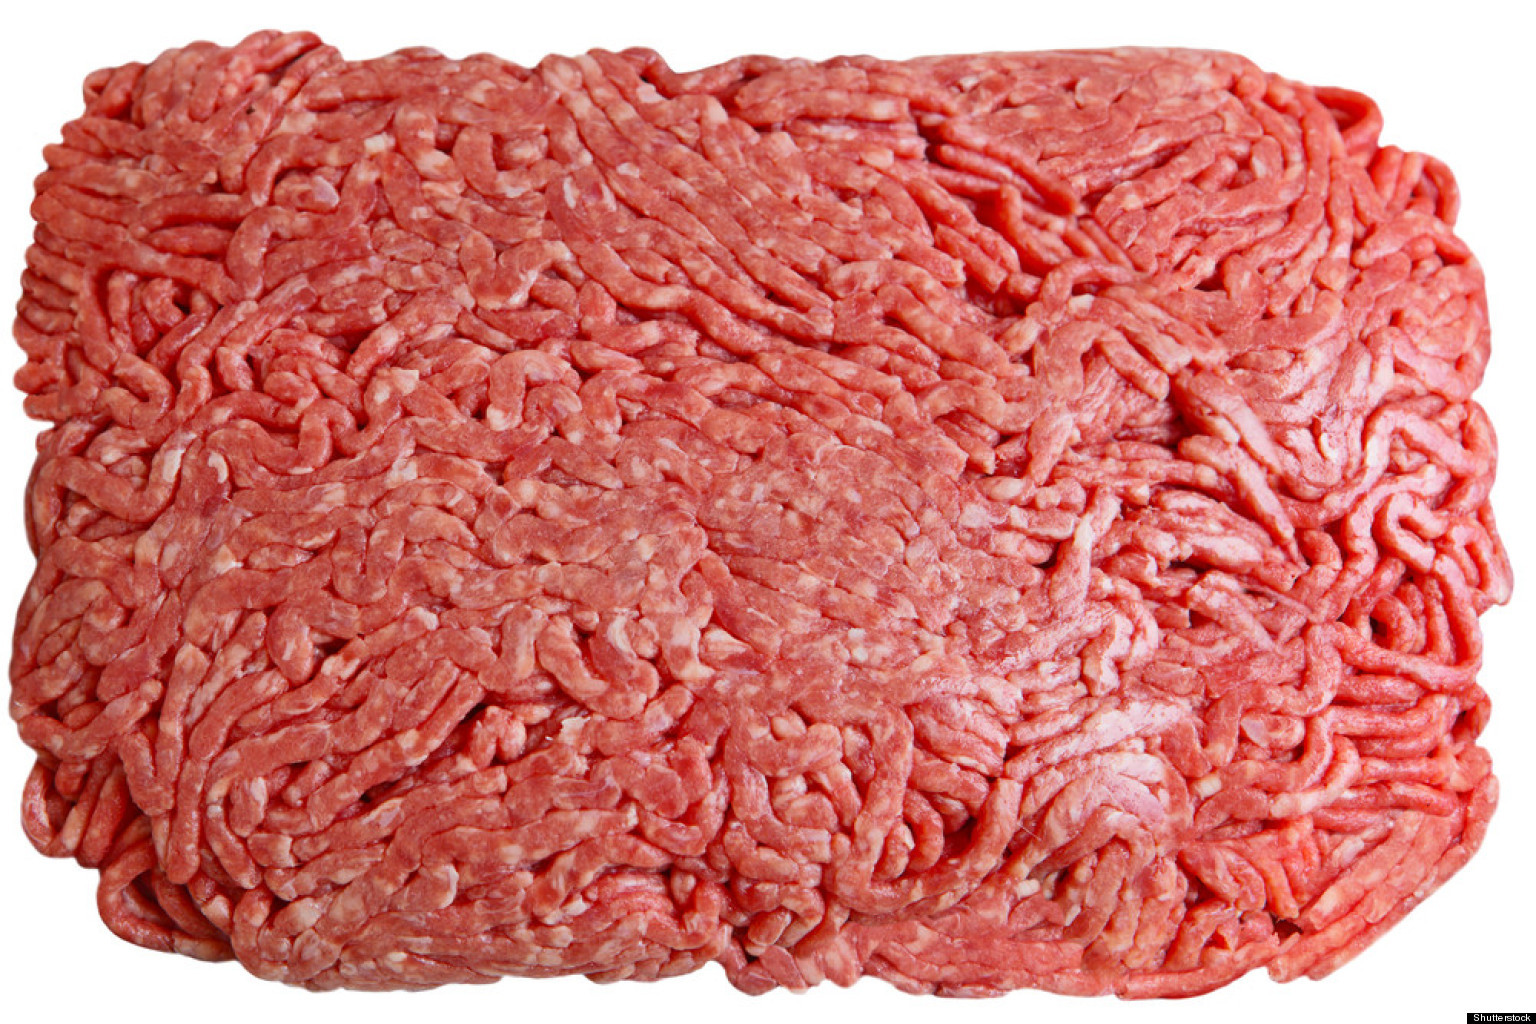 Ground Beef Sell By Date  Over 167k pounds of ground beef recalled Meat Packing